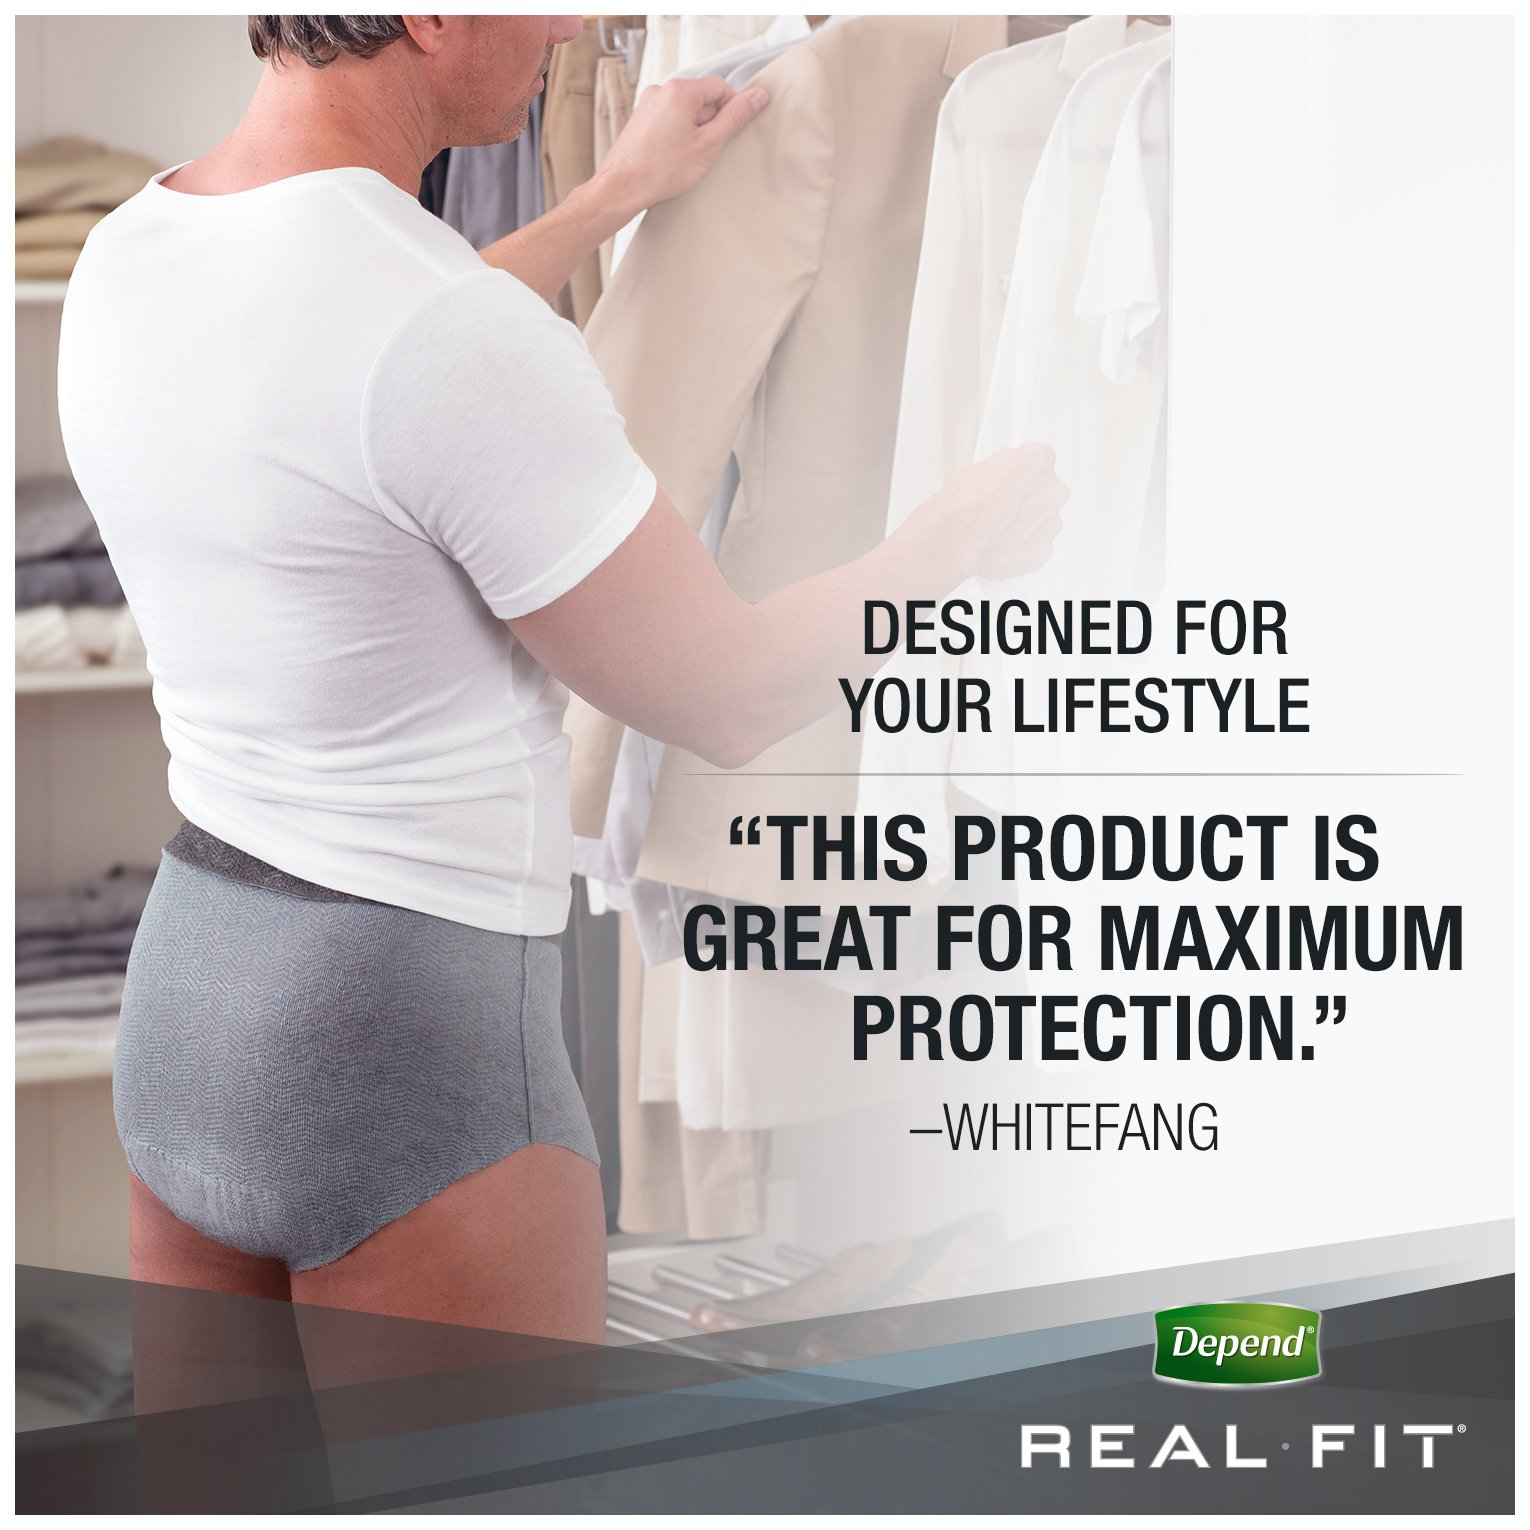 Depend Real Fit Incontinence Briefs for Men, Maximum Absorbency, S/M, Grey by Depend (Image #9)